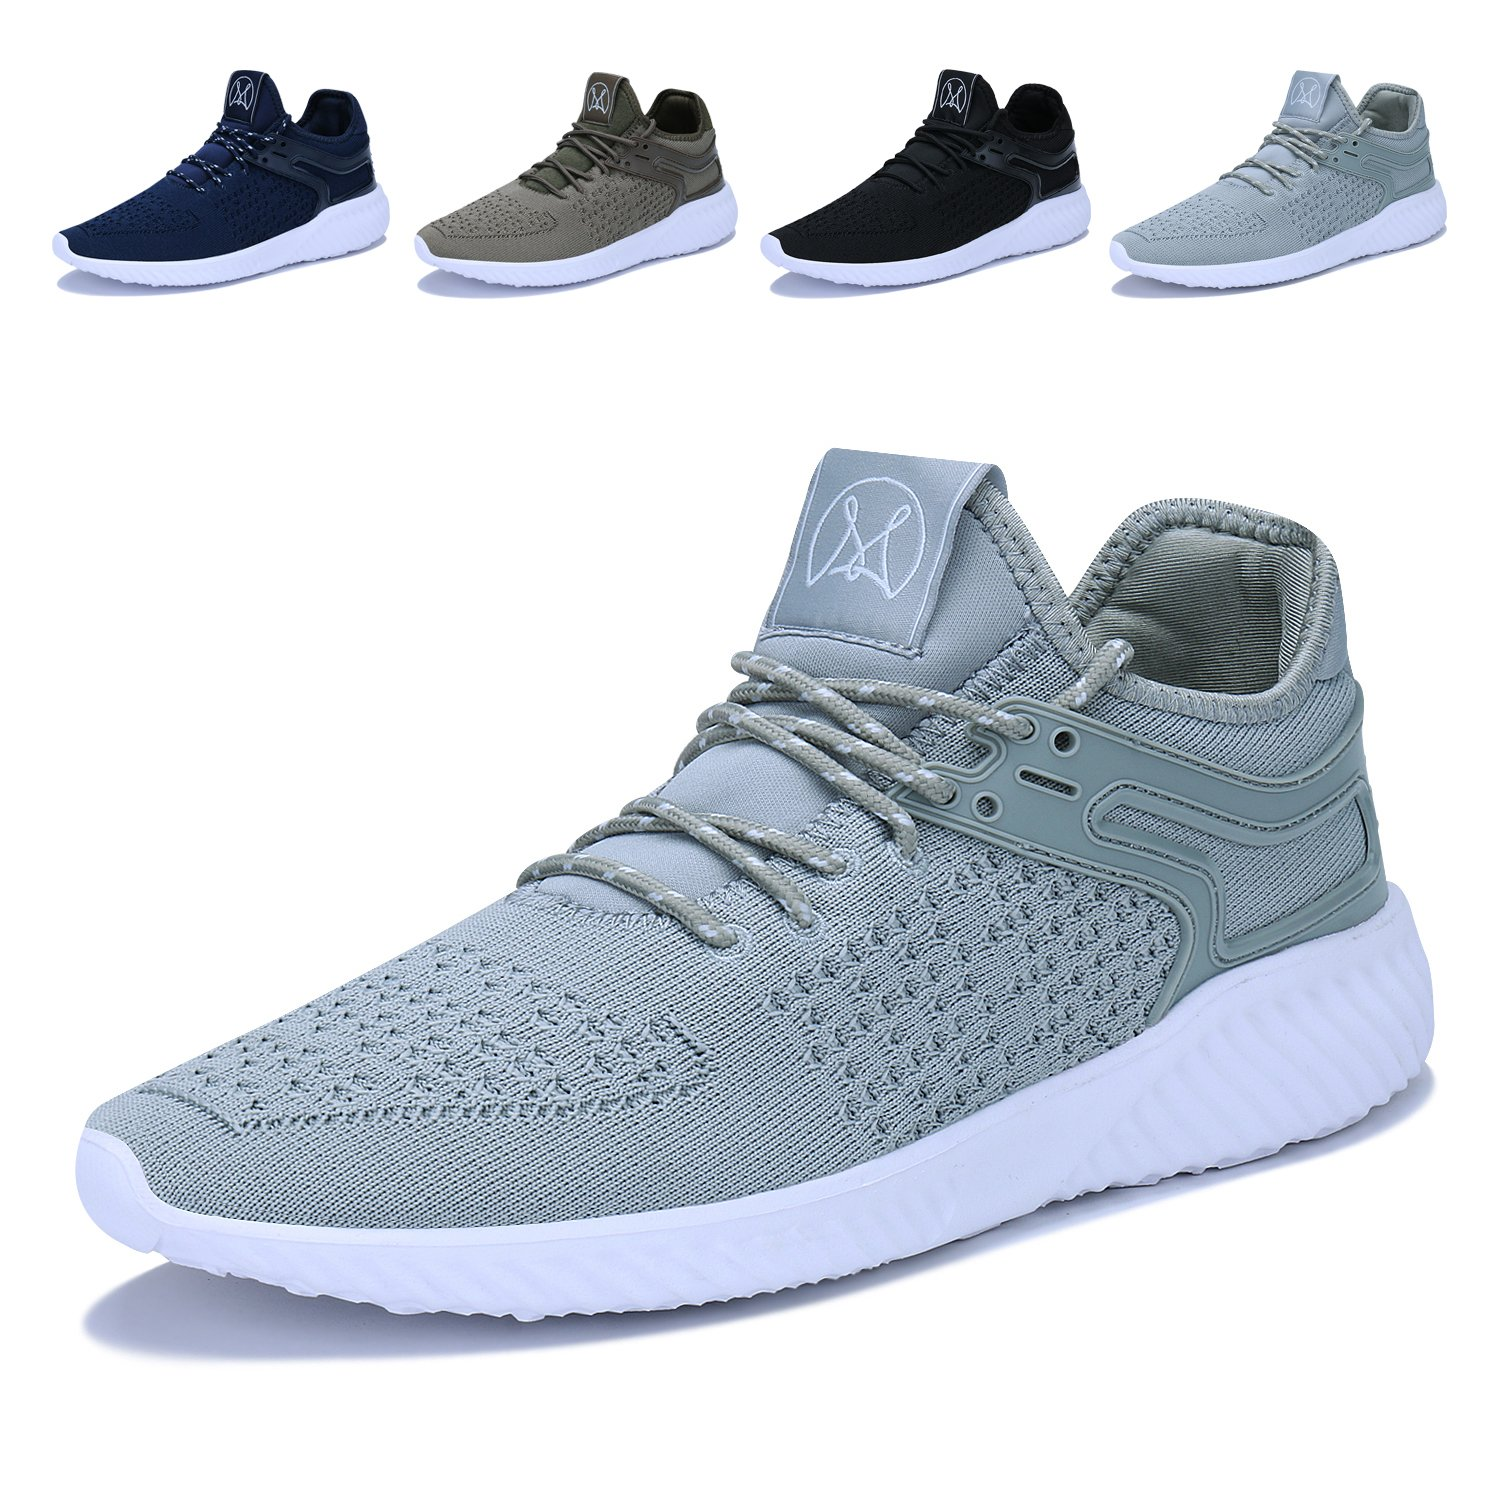 Men's Casual Walking Shoes Lightweight Breathable Running Tennis Sneakers Caitin